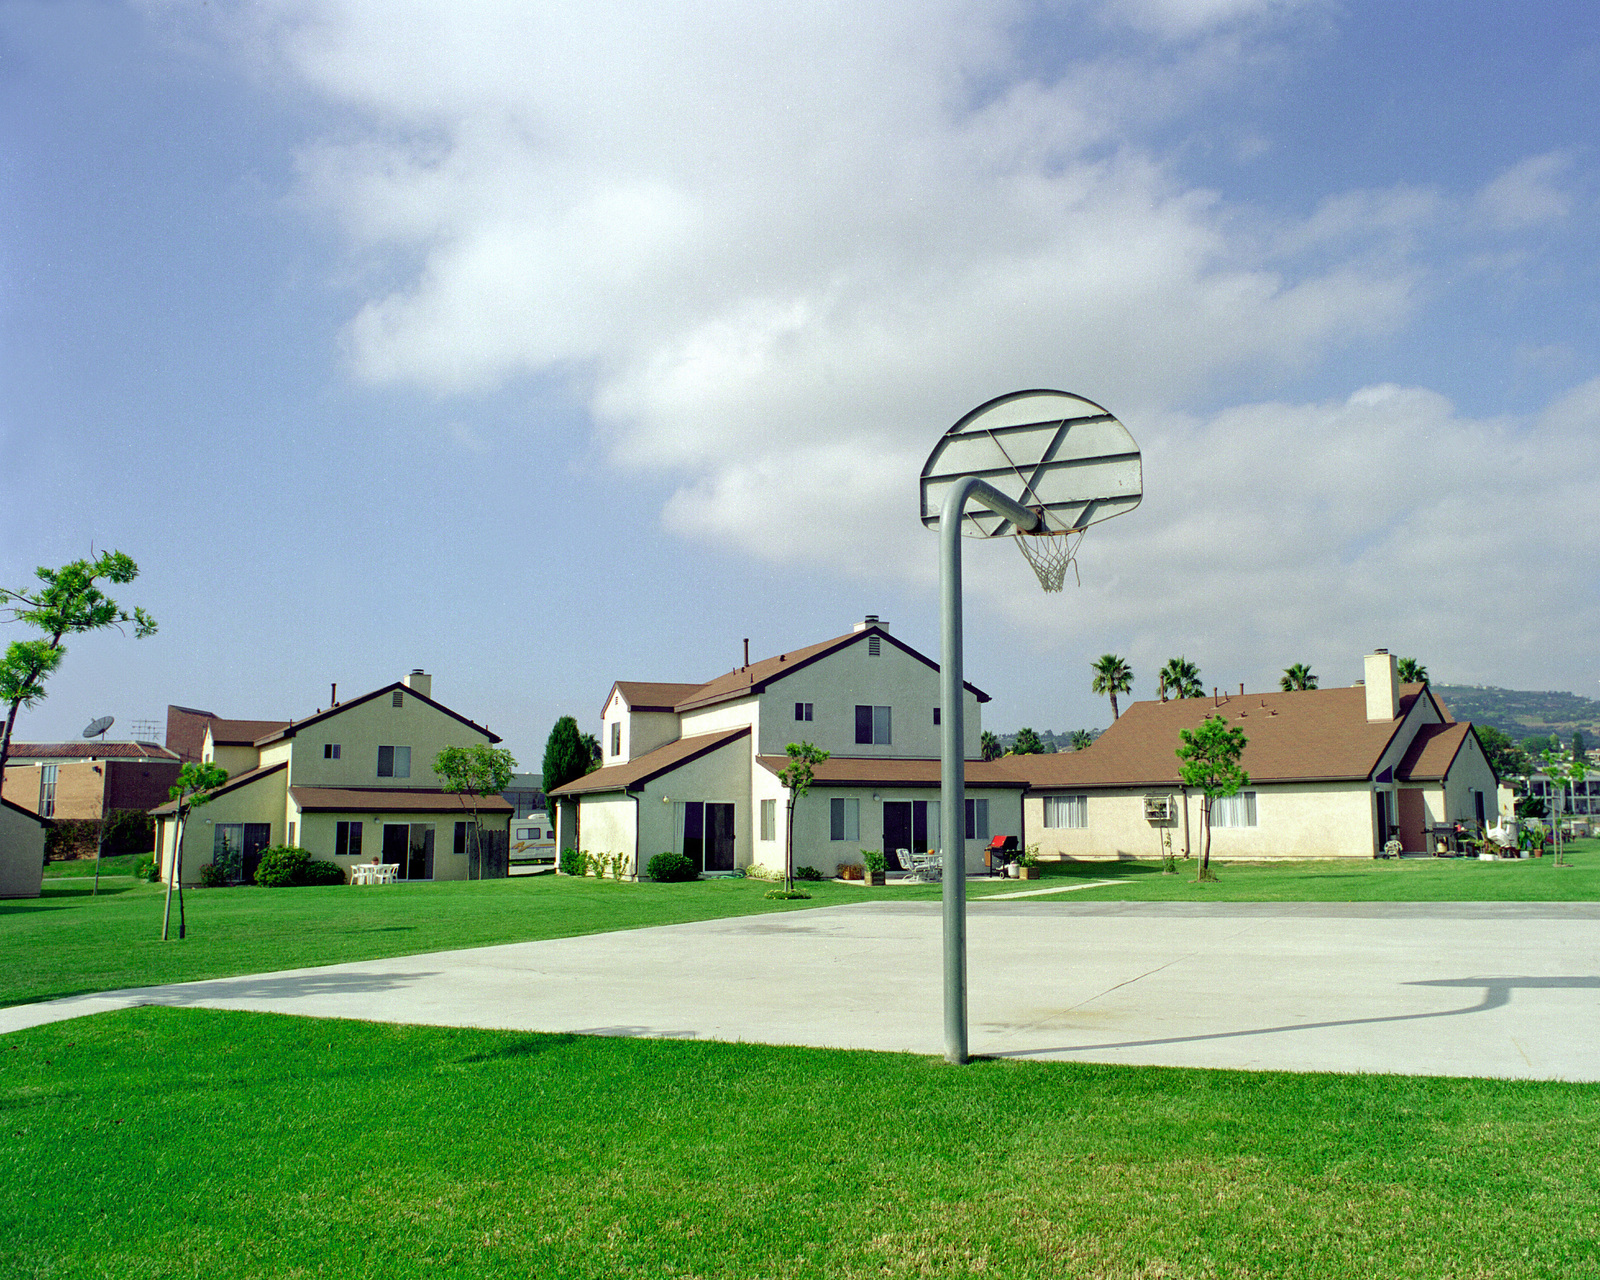 Officer housing located 20 miles south of Los Angeles Air Force Base in San Pedro, California. The housing area overlooks the Pacific Ocean